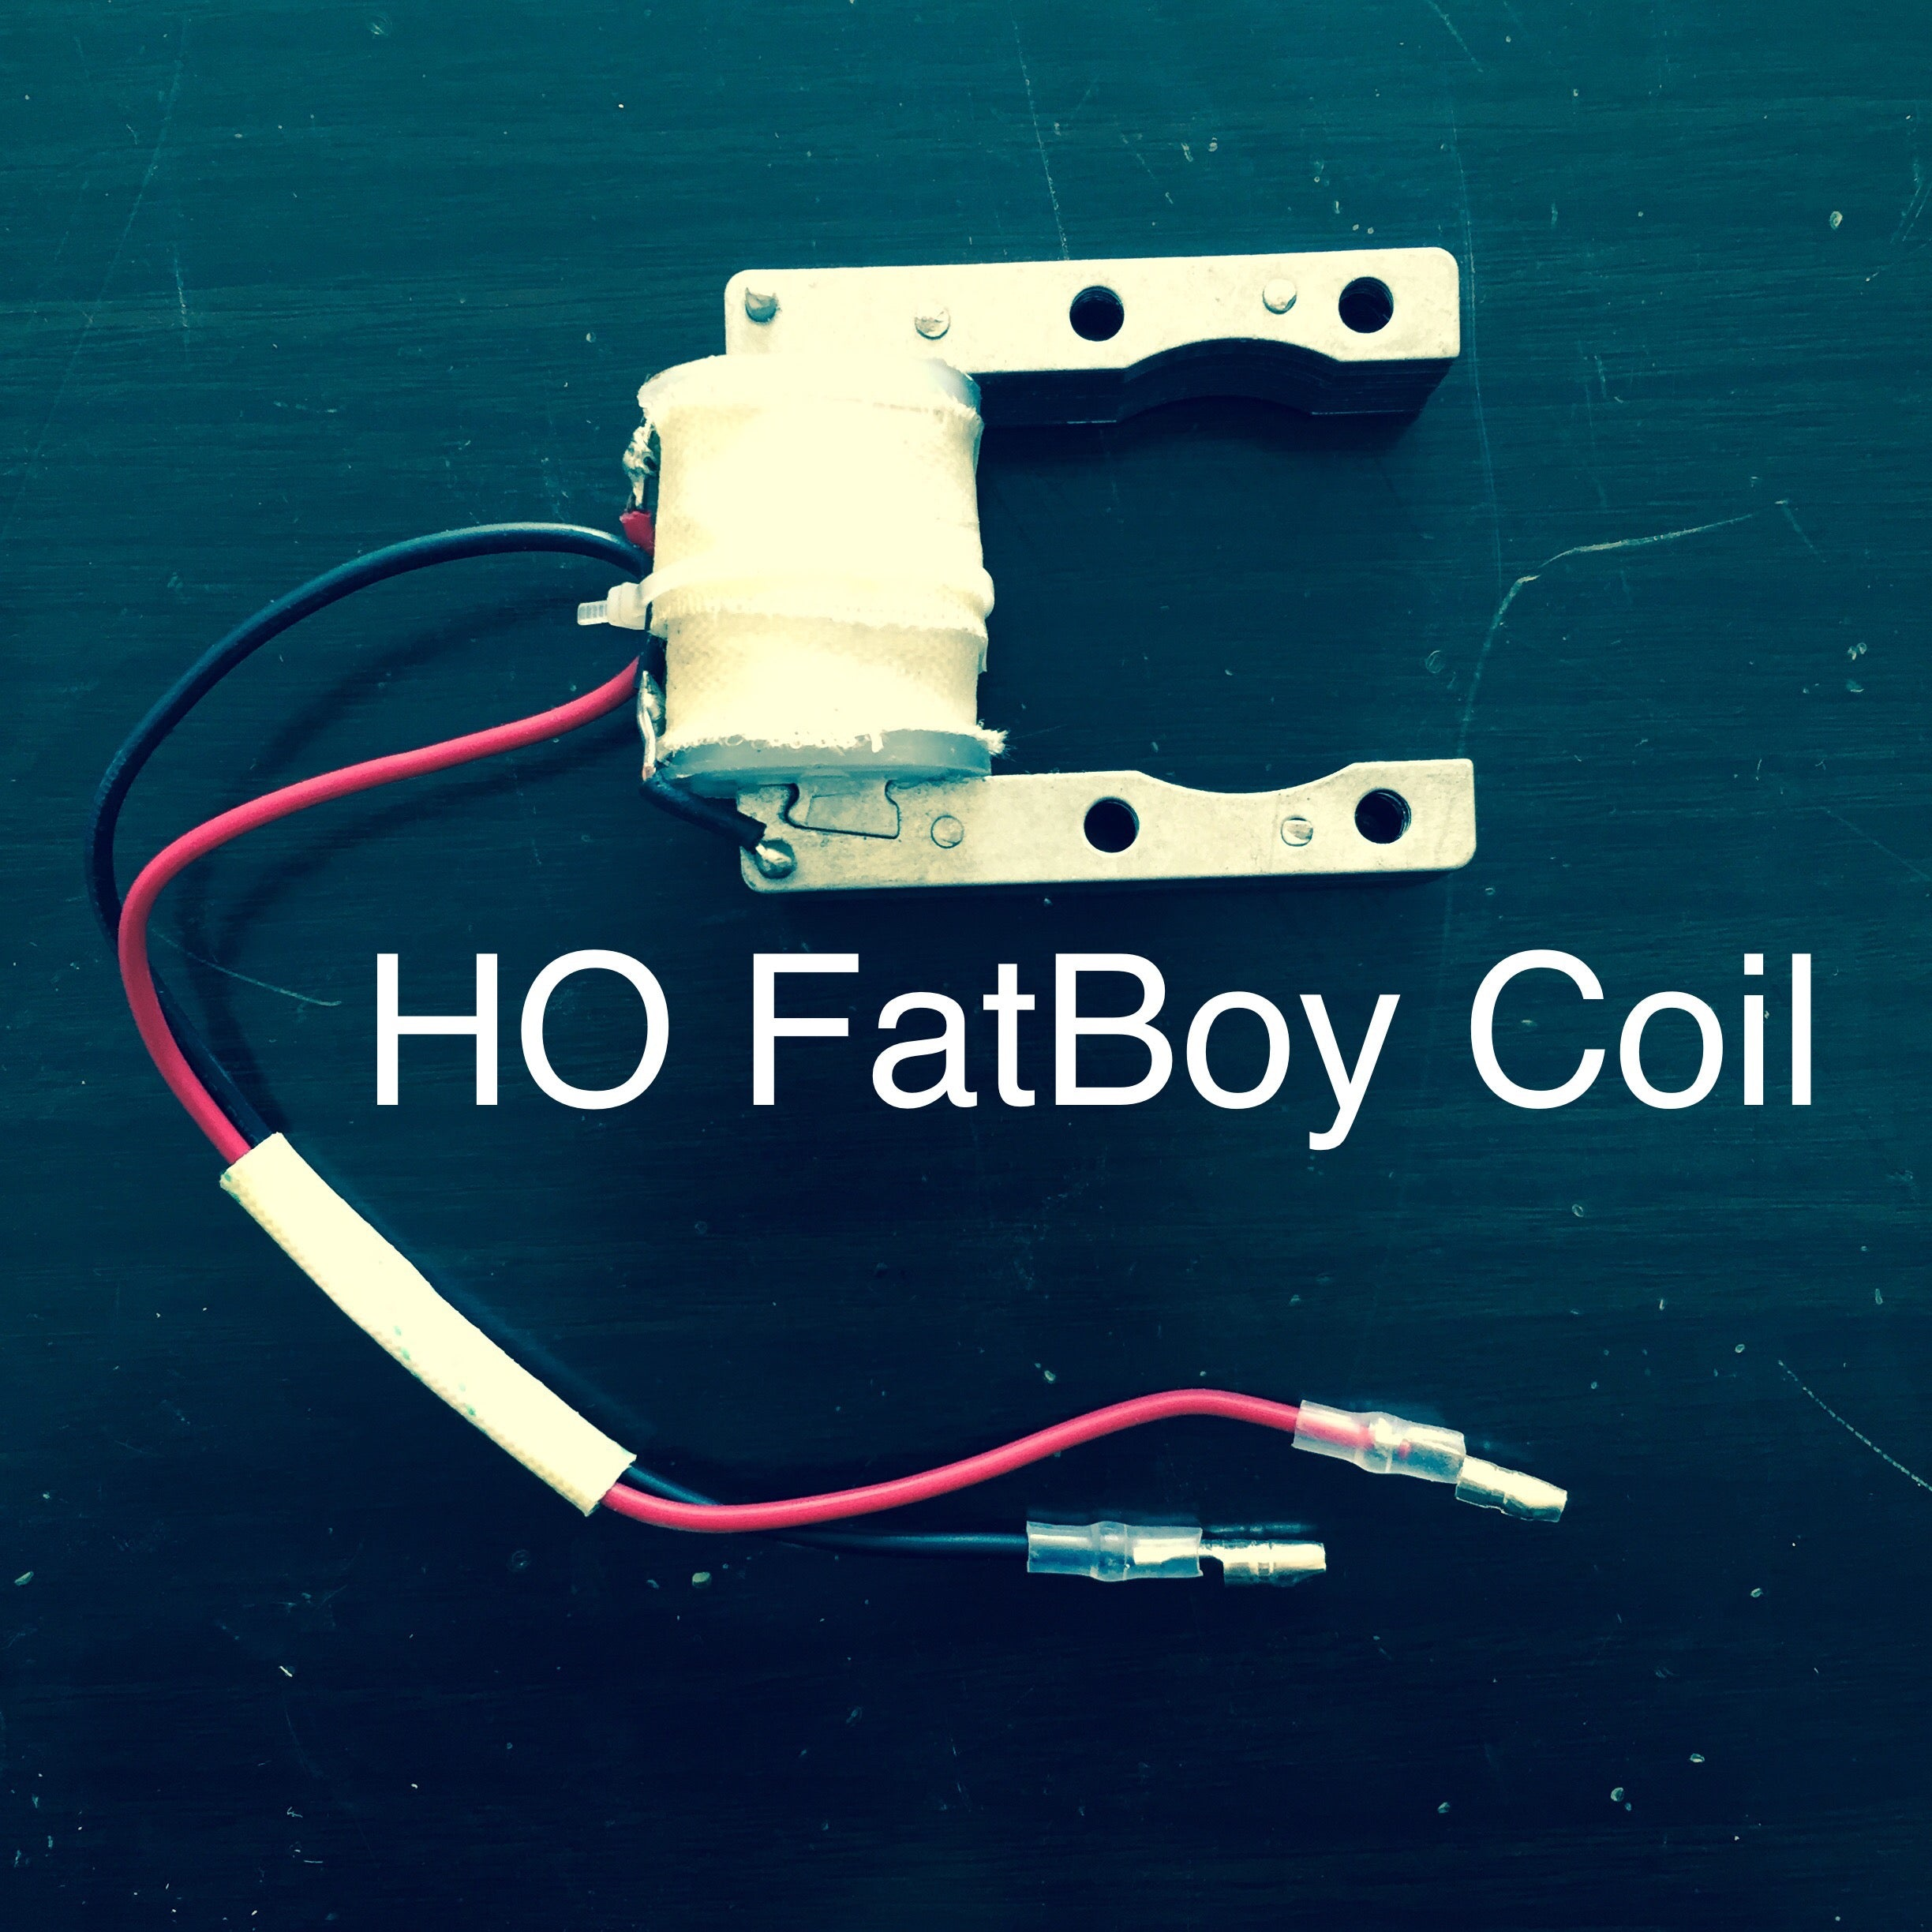 Fat Boy Magneto coil